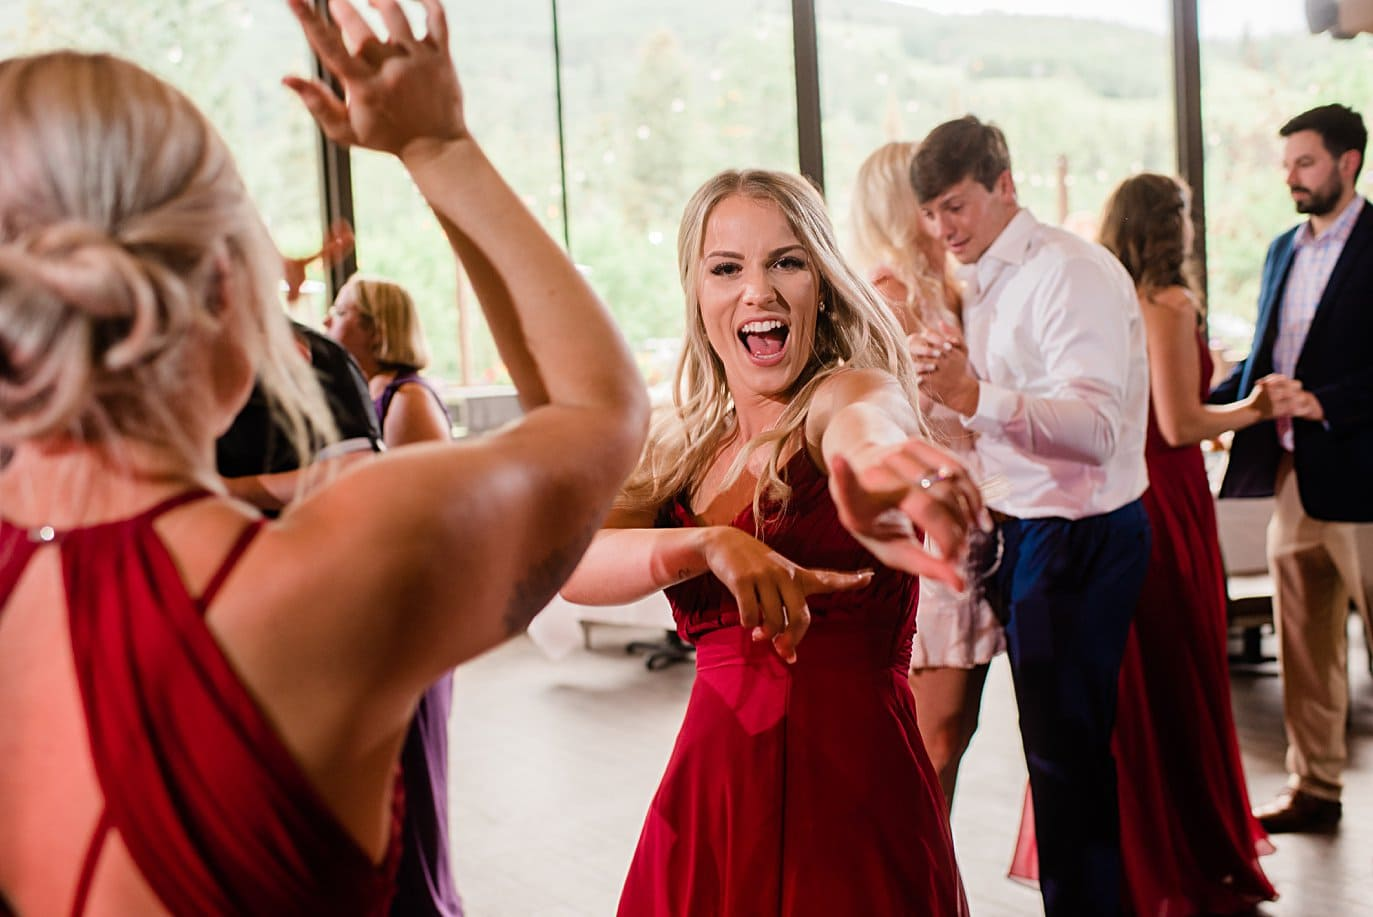 Colorado mountain wedding dance party at Vail Manor Lodge wedding by Aspen wedding photographer Jennie Crate